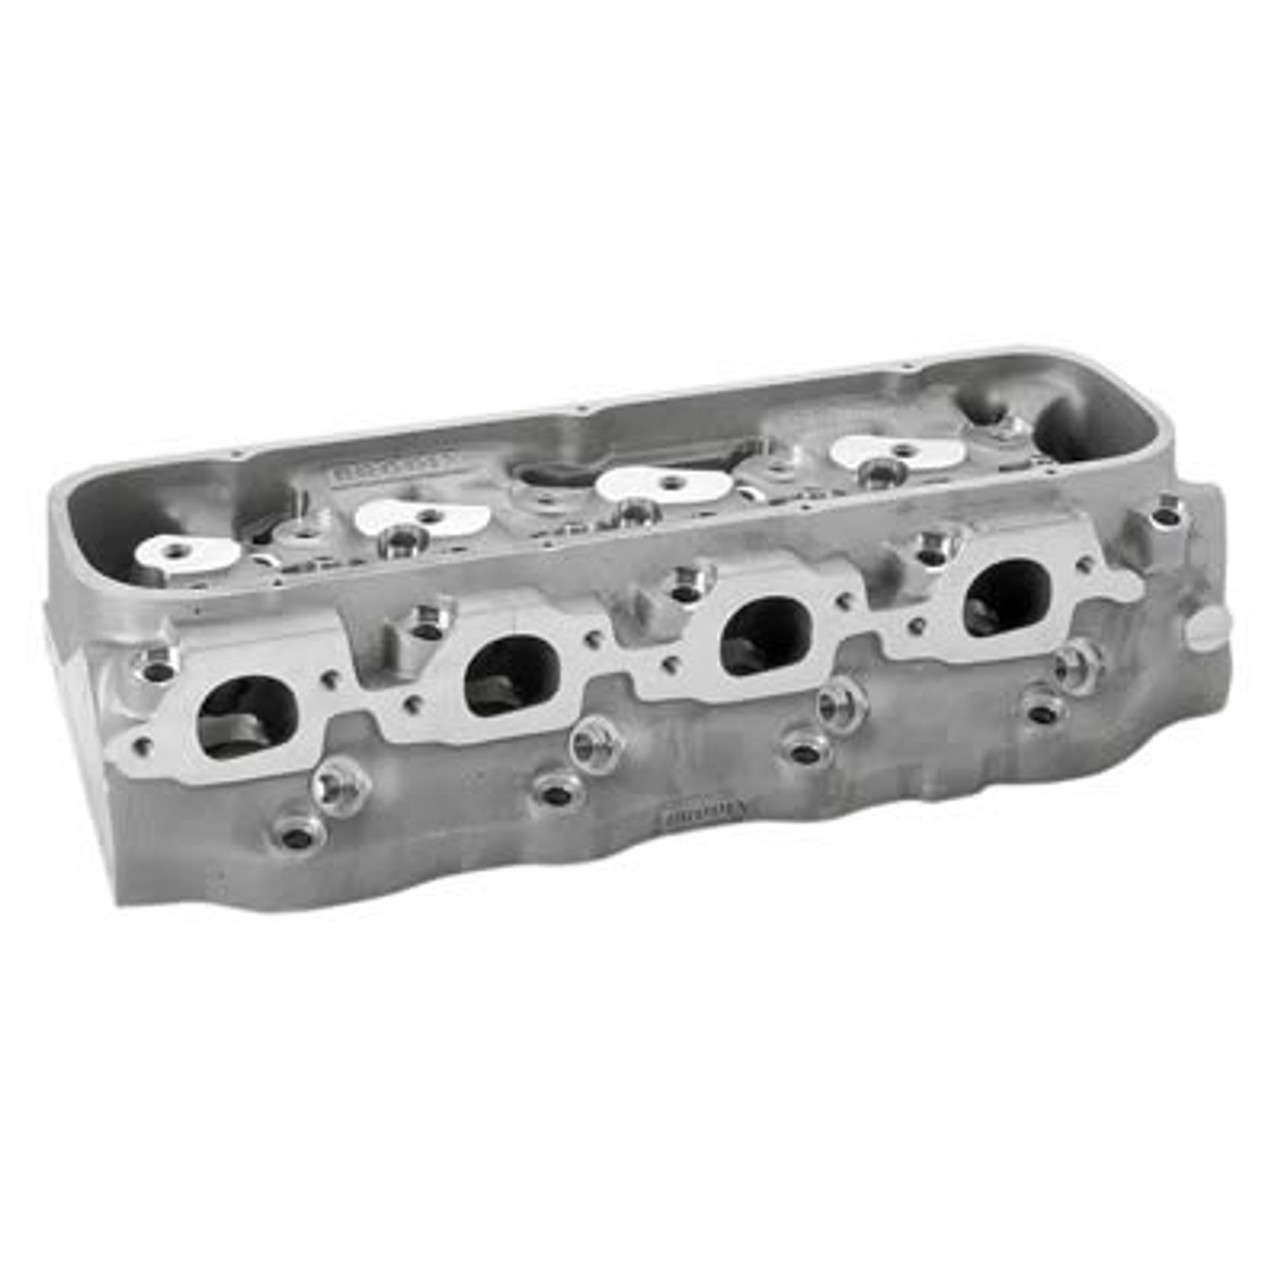 Brodix Cylinder Heads BB-2 Cylinder Heads for Big Block Chevy BB2 BARE  2020000 FREE SHIPPING